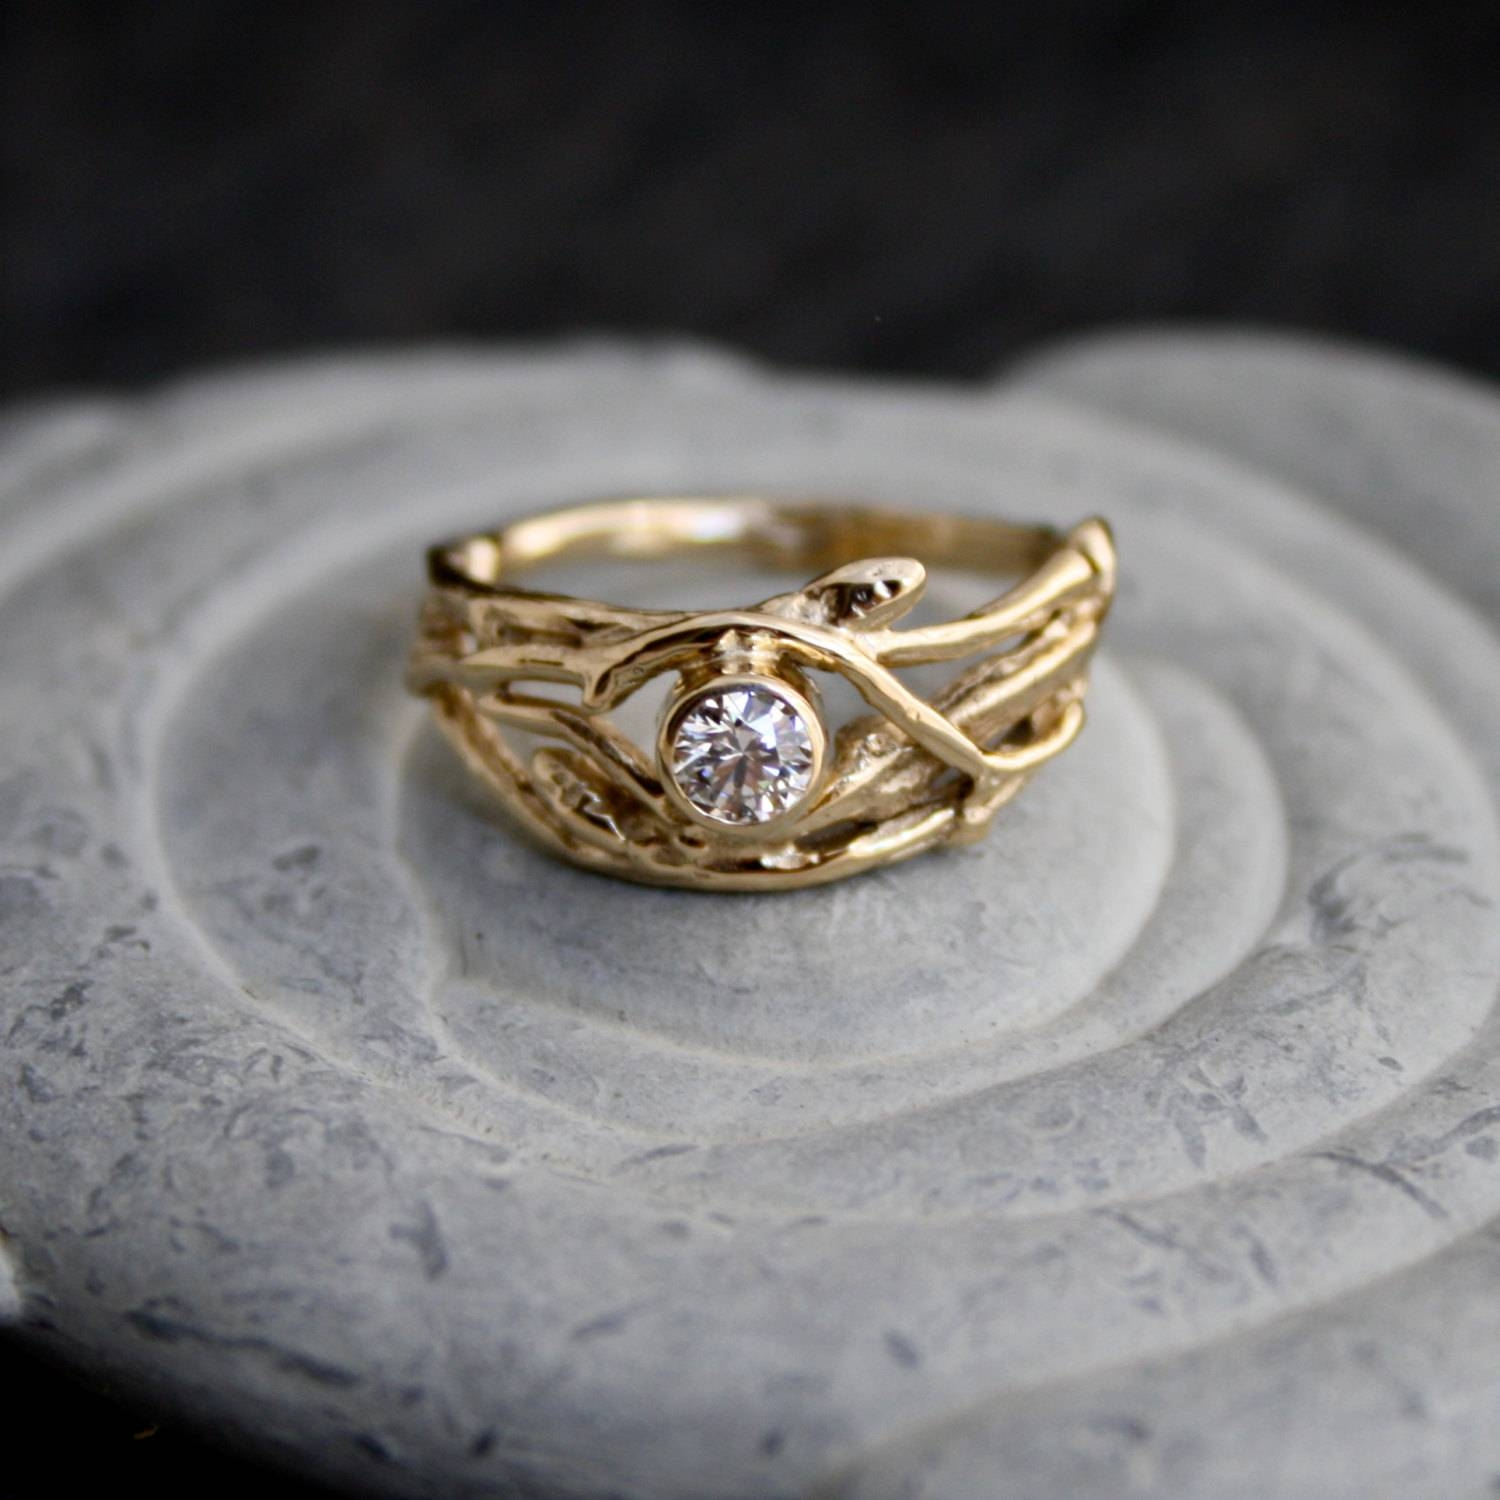 Ethical Canadian Diamond 14Kt Yellow Gold Engagement Branch Regarding Tree Branch Engagement Rings (Gallery 5 of 15)